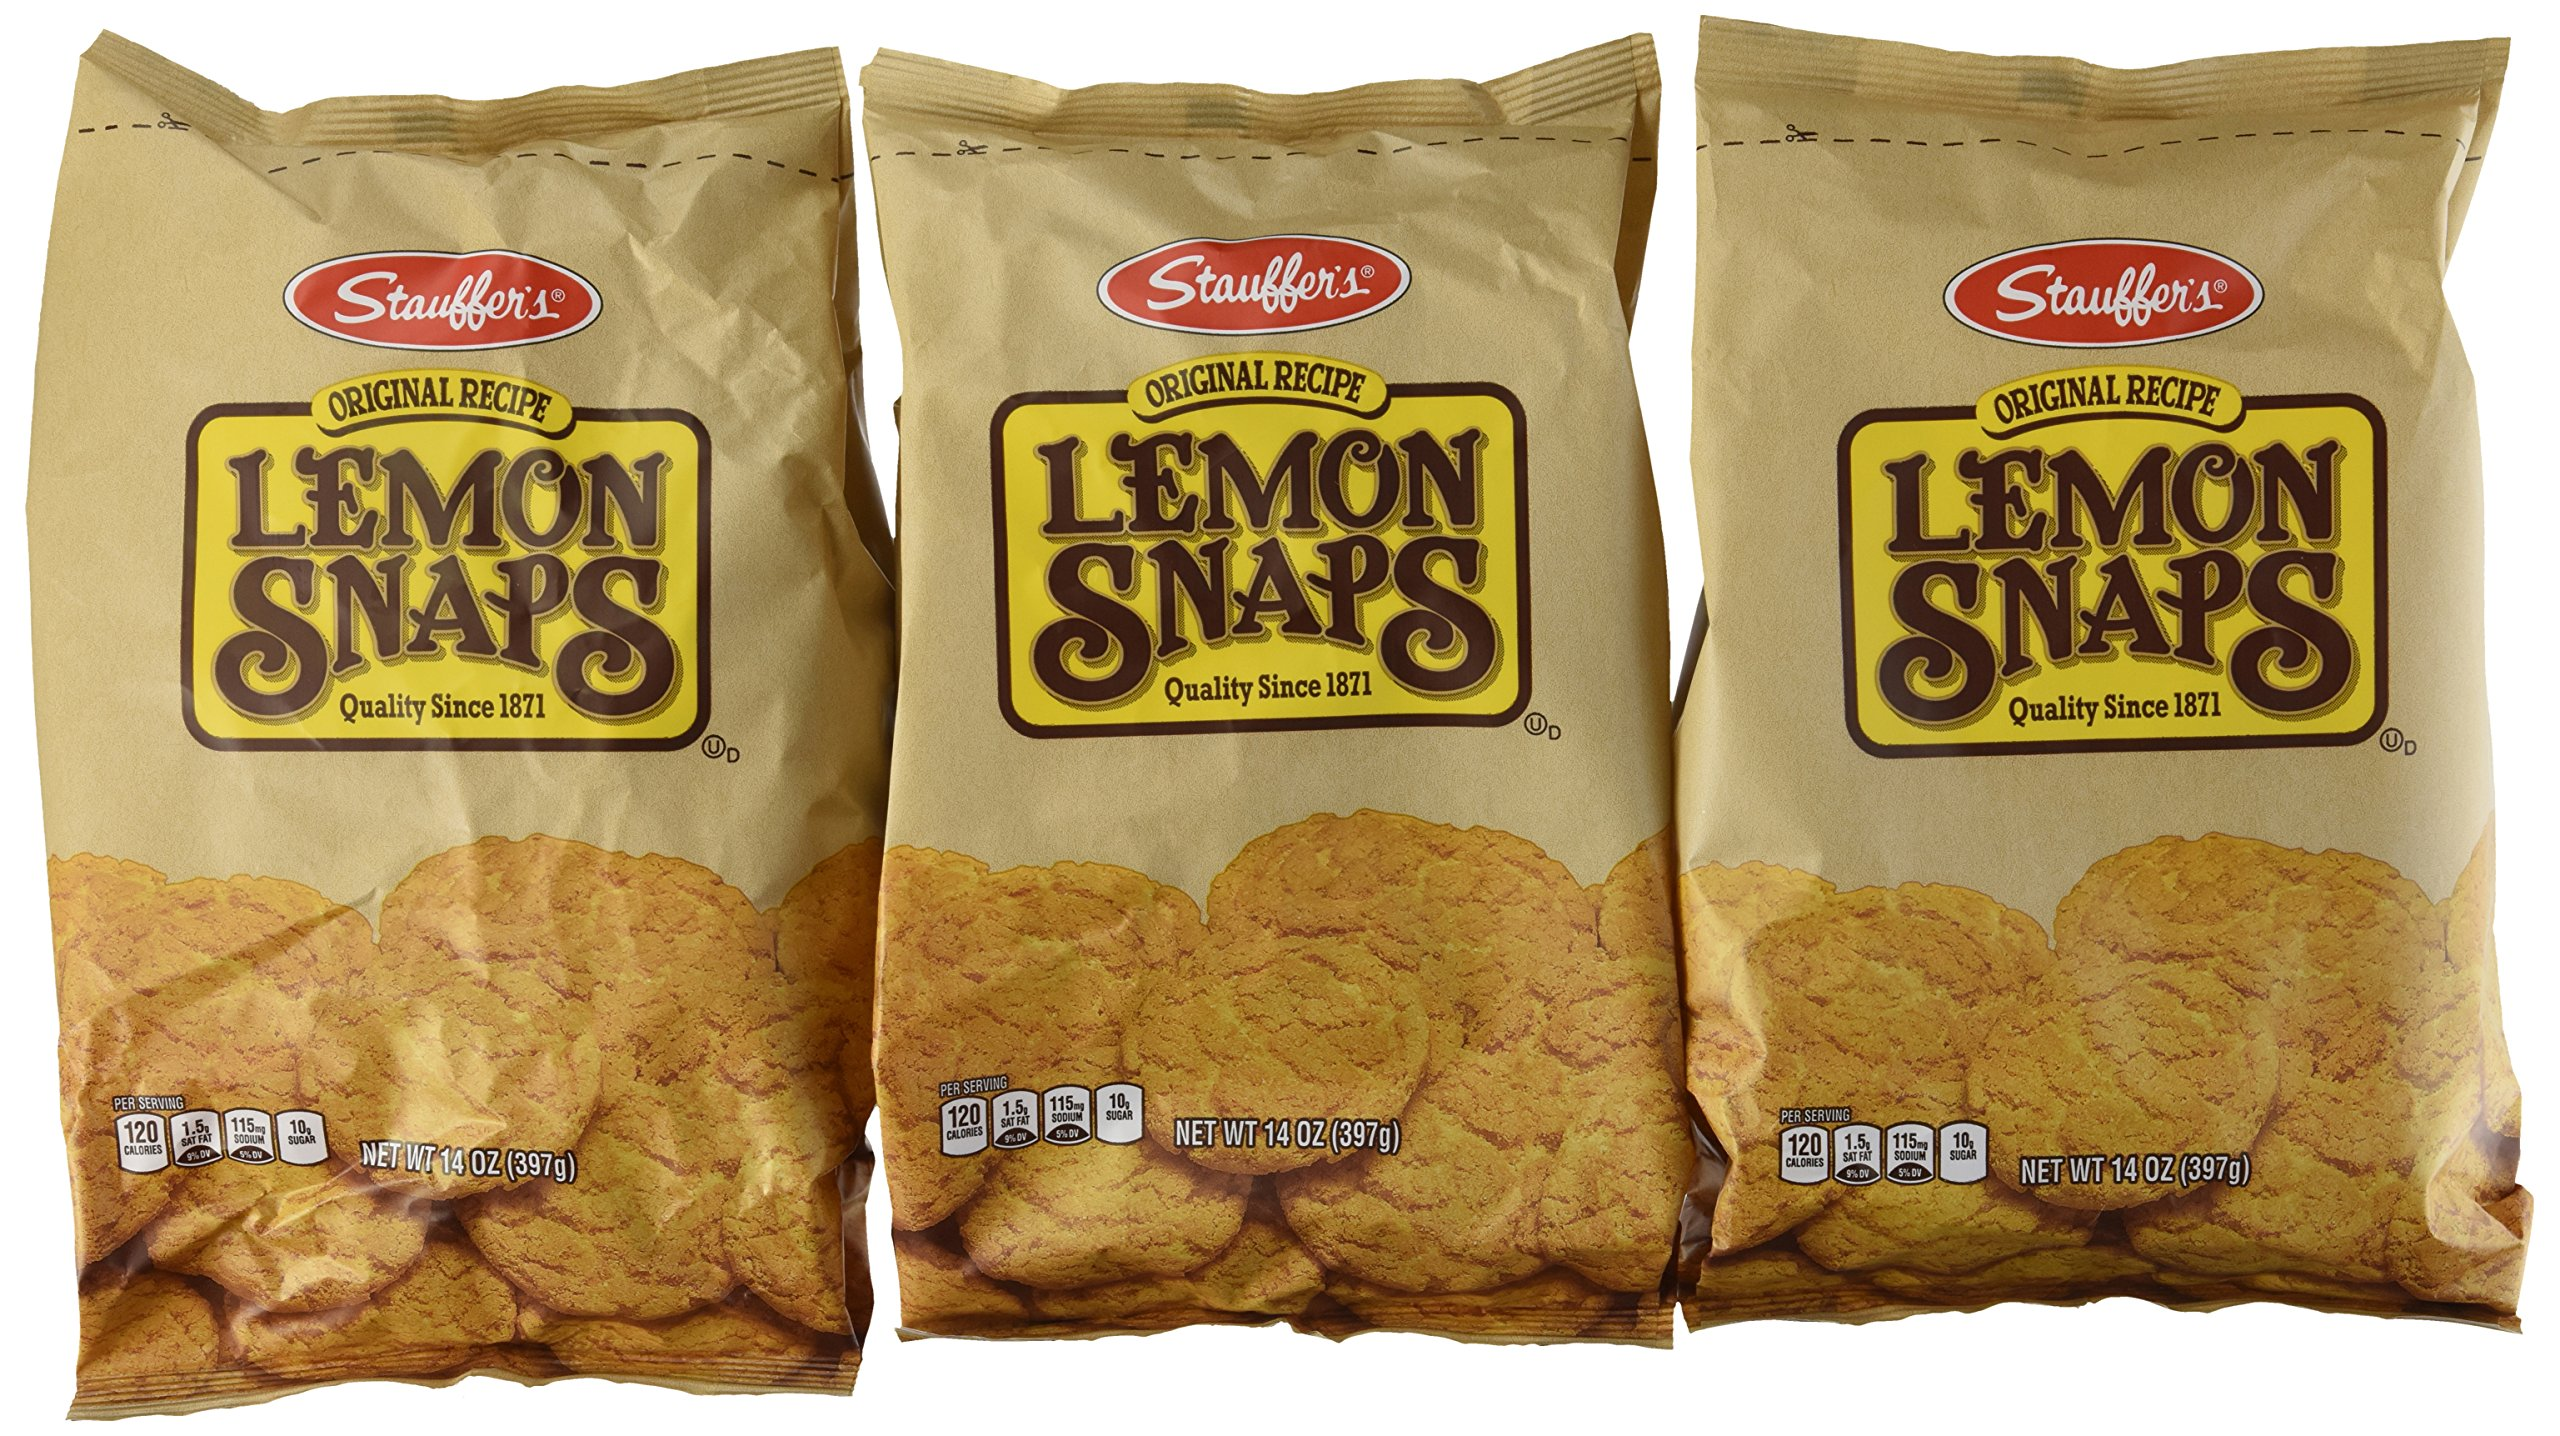 Stauffers Cookie Ginger Snap Original 14 Ounce Pack Of 3 Arnotts Joyful Package Extra Cheese Lemon Snaps Cookies